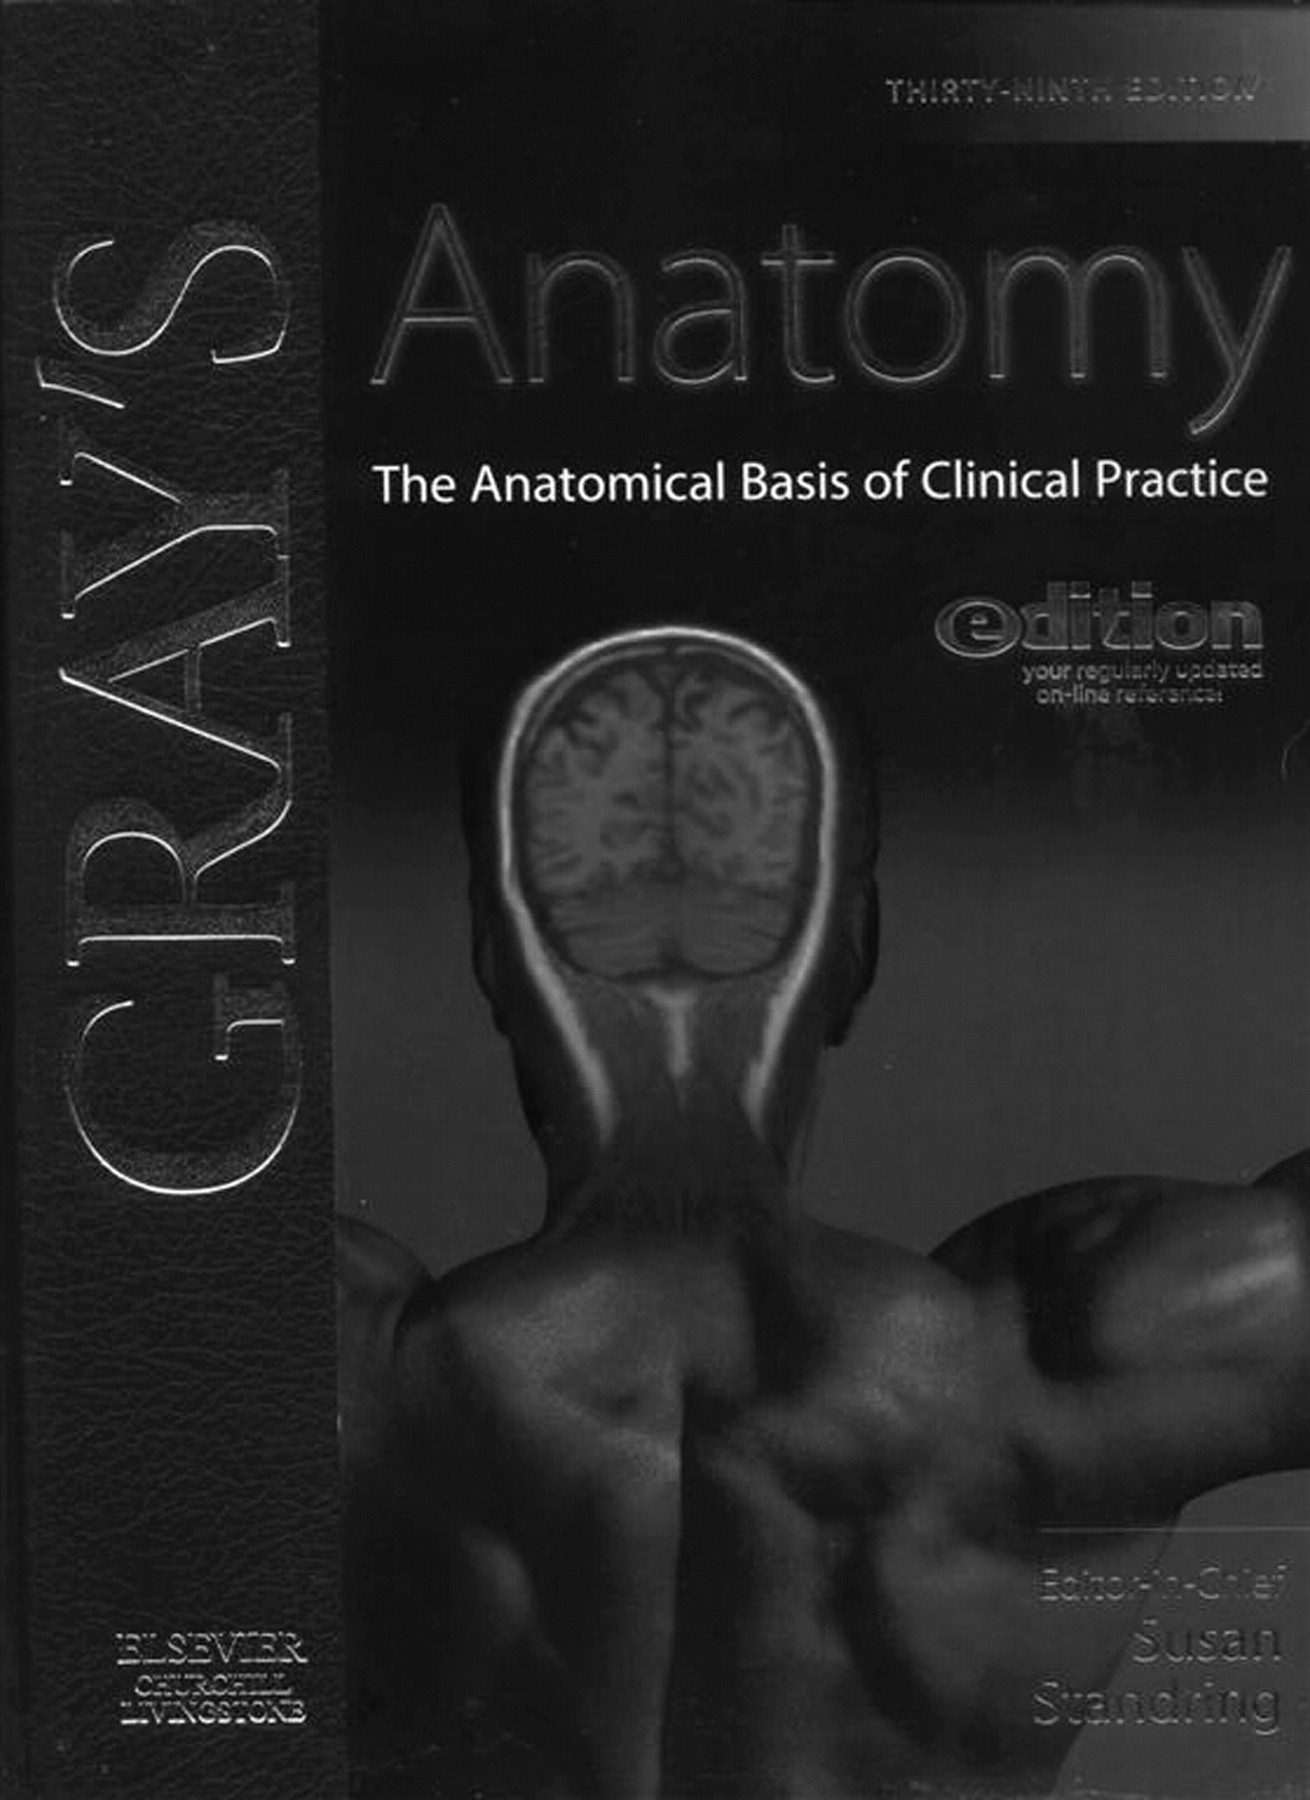 Grays Anatomy 39th Edition The Anatomical Basis Of Clinical